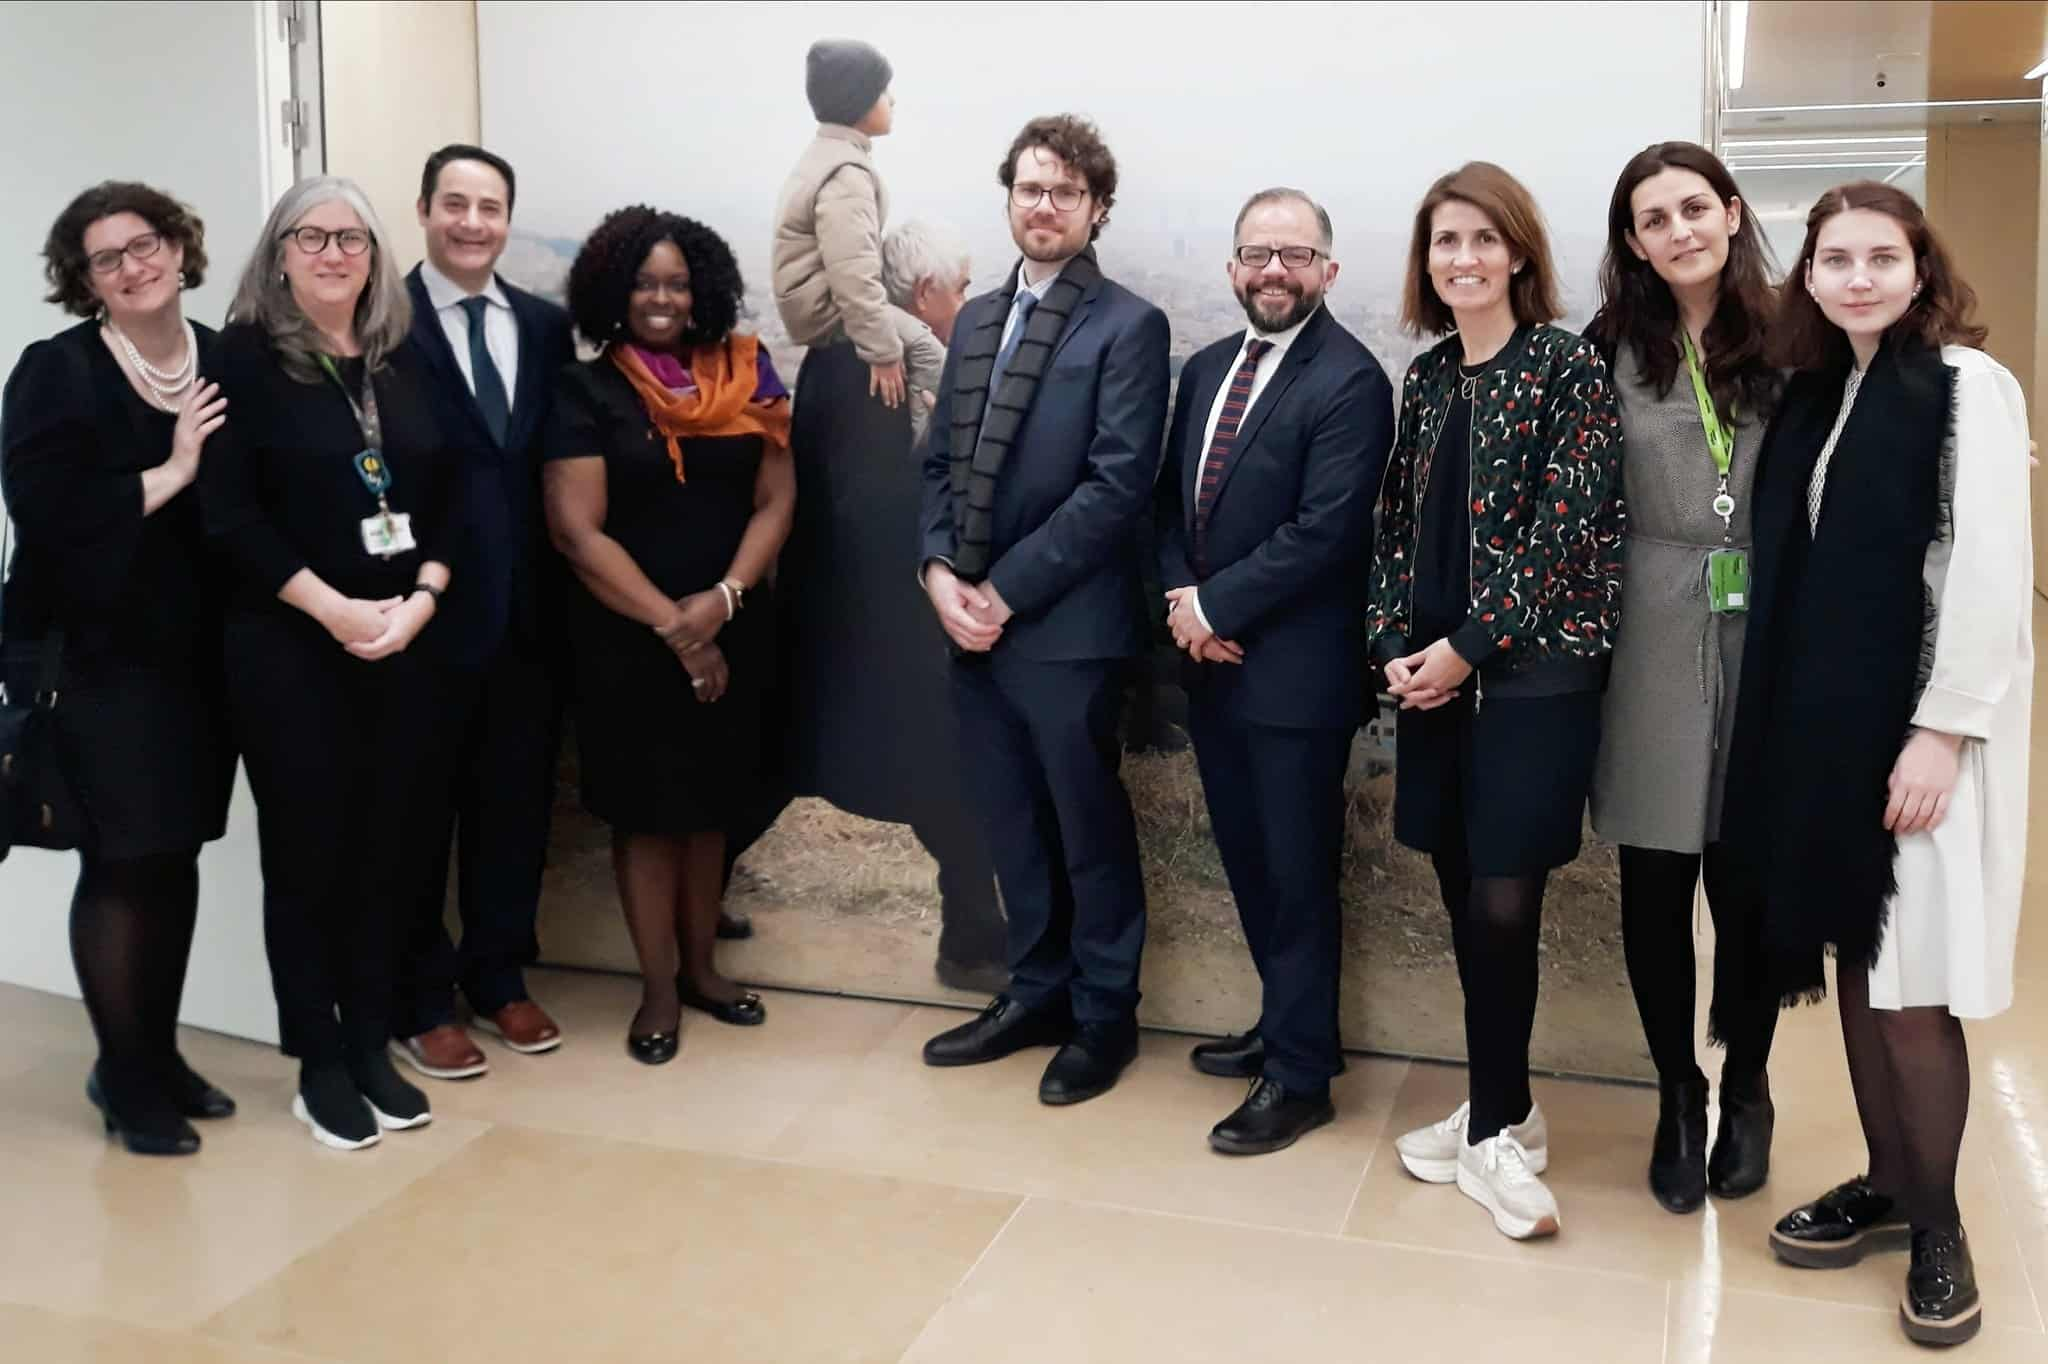 The five German Marshall Fund fellows during their visit to Pasqual Maragall Foundation in Barcelona